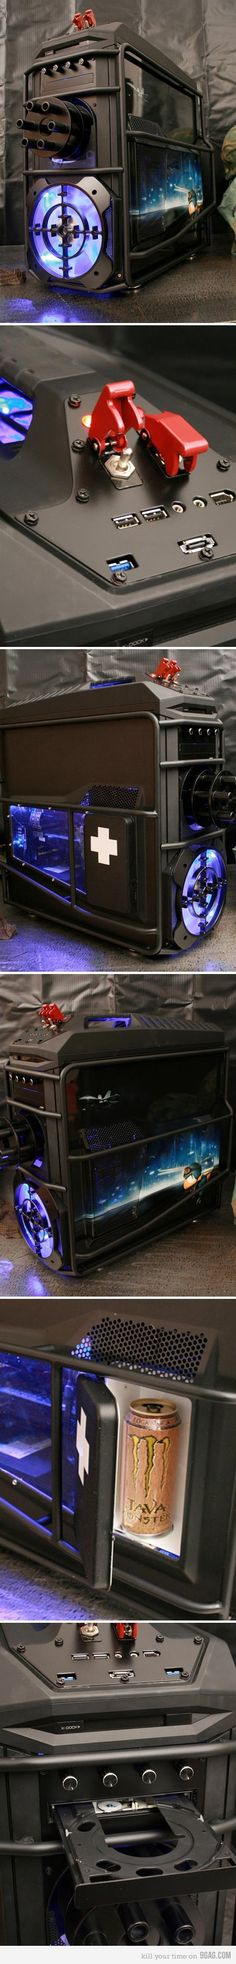 Battlefield PC - Interesting Case Mod... I like the mini-fridge :)